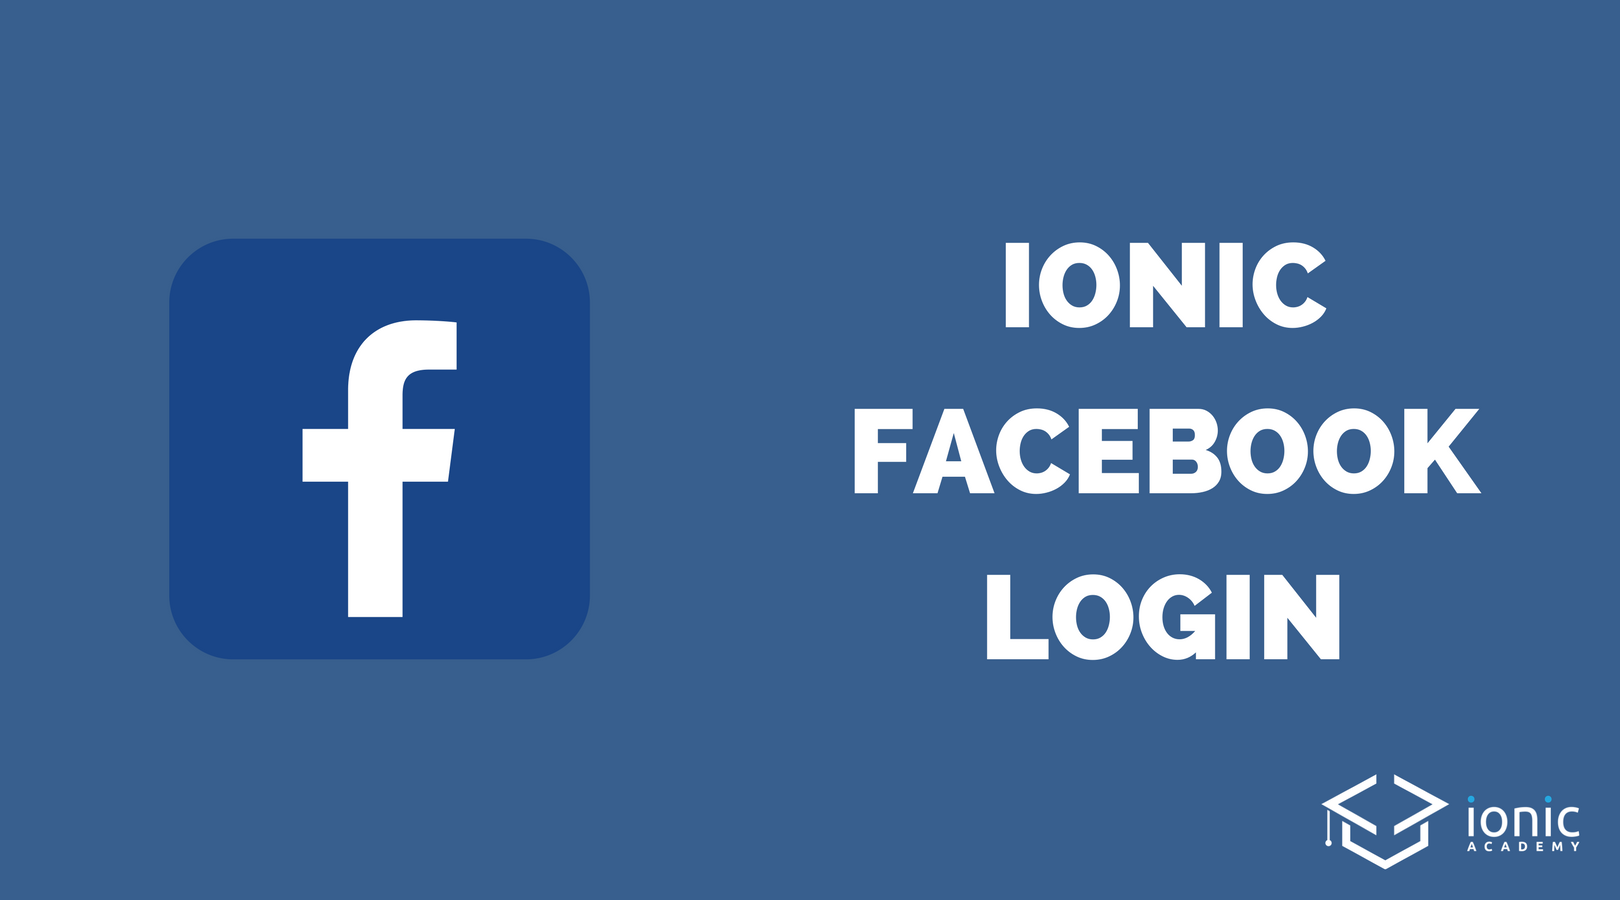 ionic facebook login and user profile data ionic academy. Black Bedroom Furniture Sets. Home Design Ideas